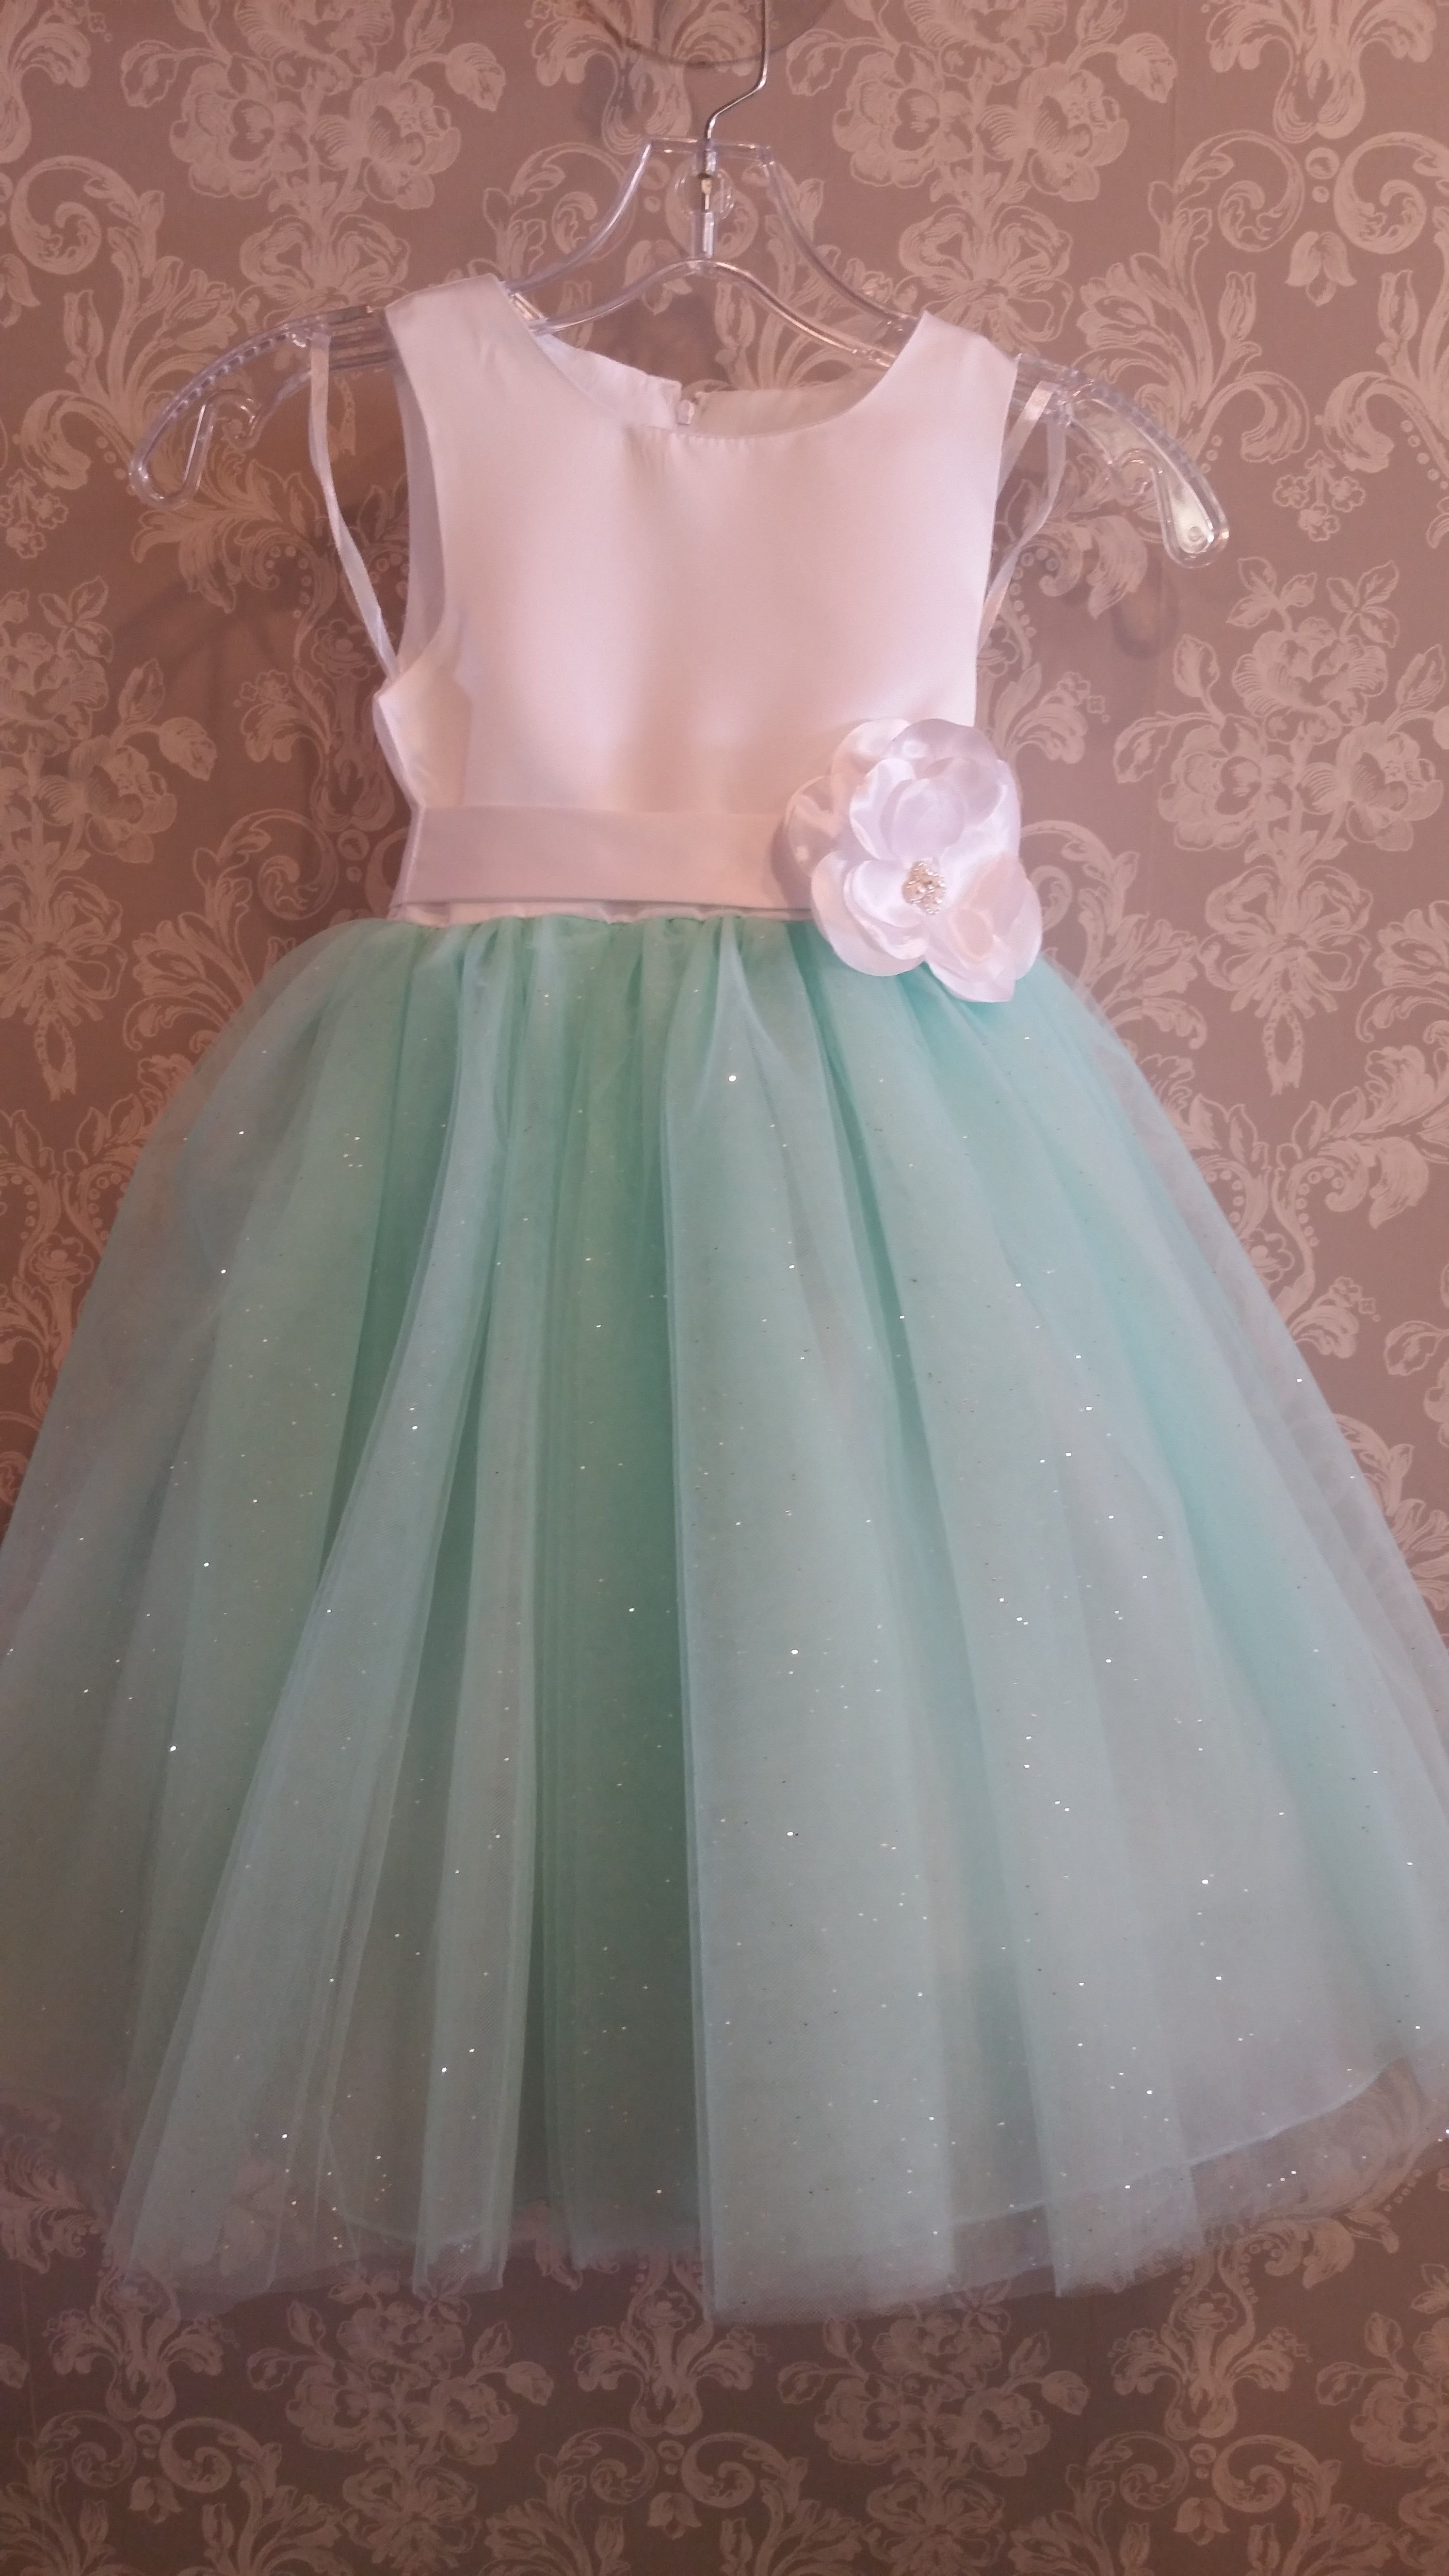 17 best images about flower girl on pinterest mint green 17 best images about flower girl on pinterest mint green turquoise and girls dresses mightylinksfo